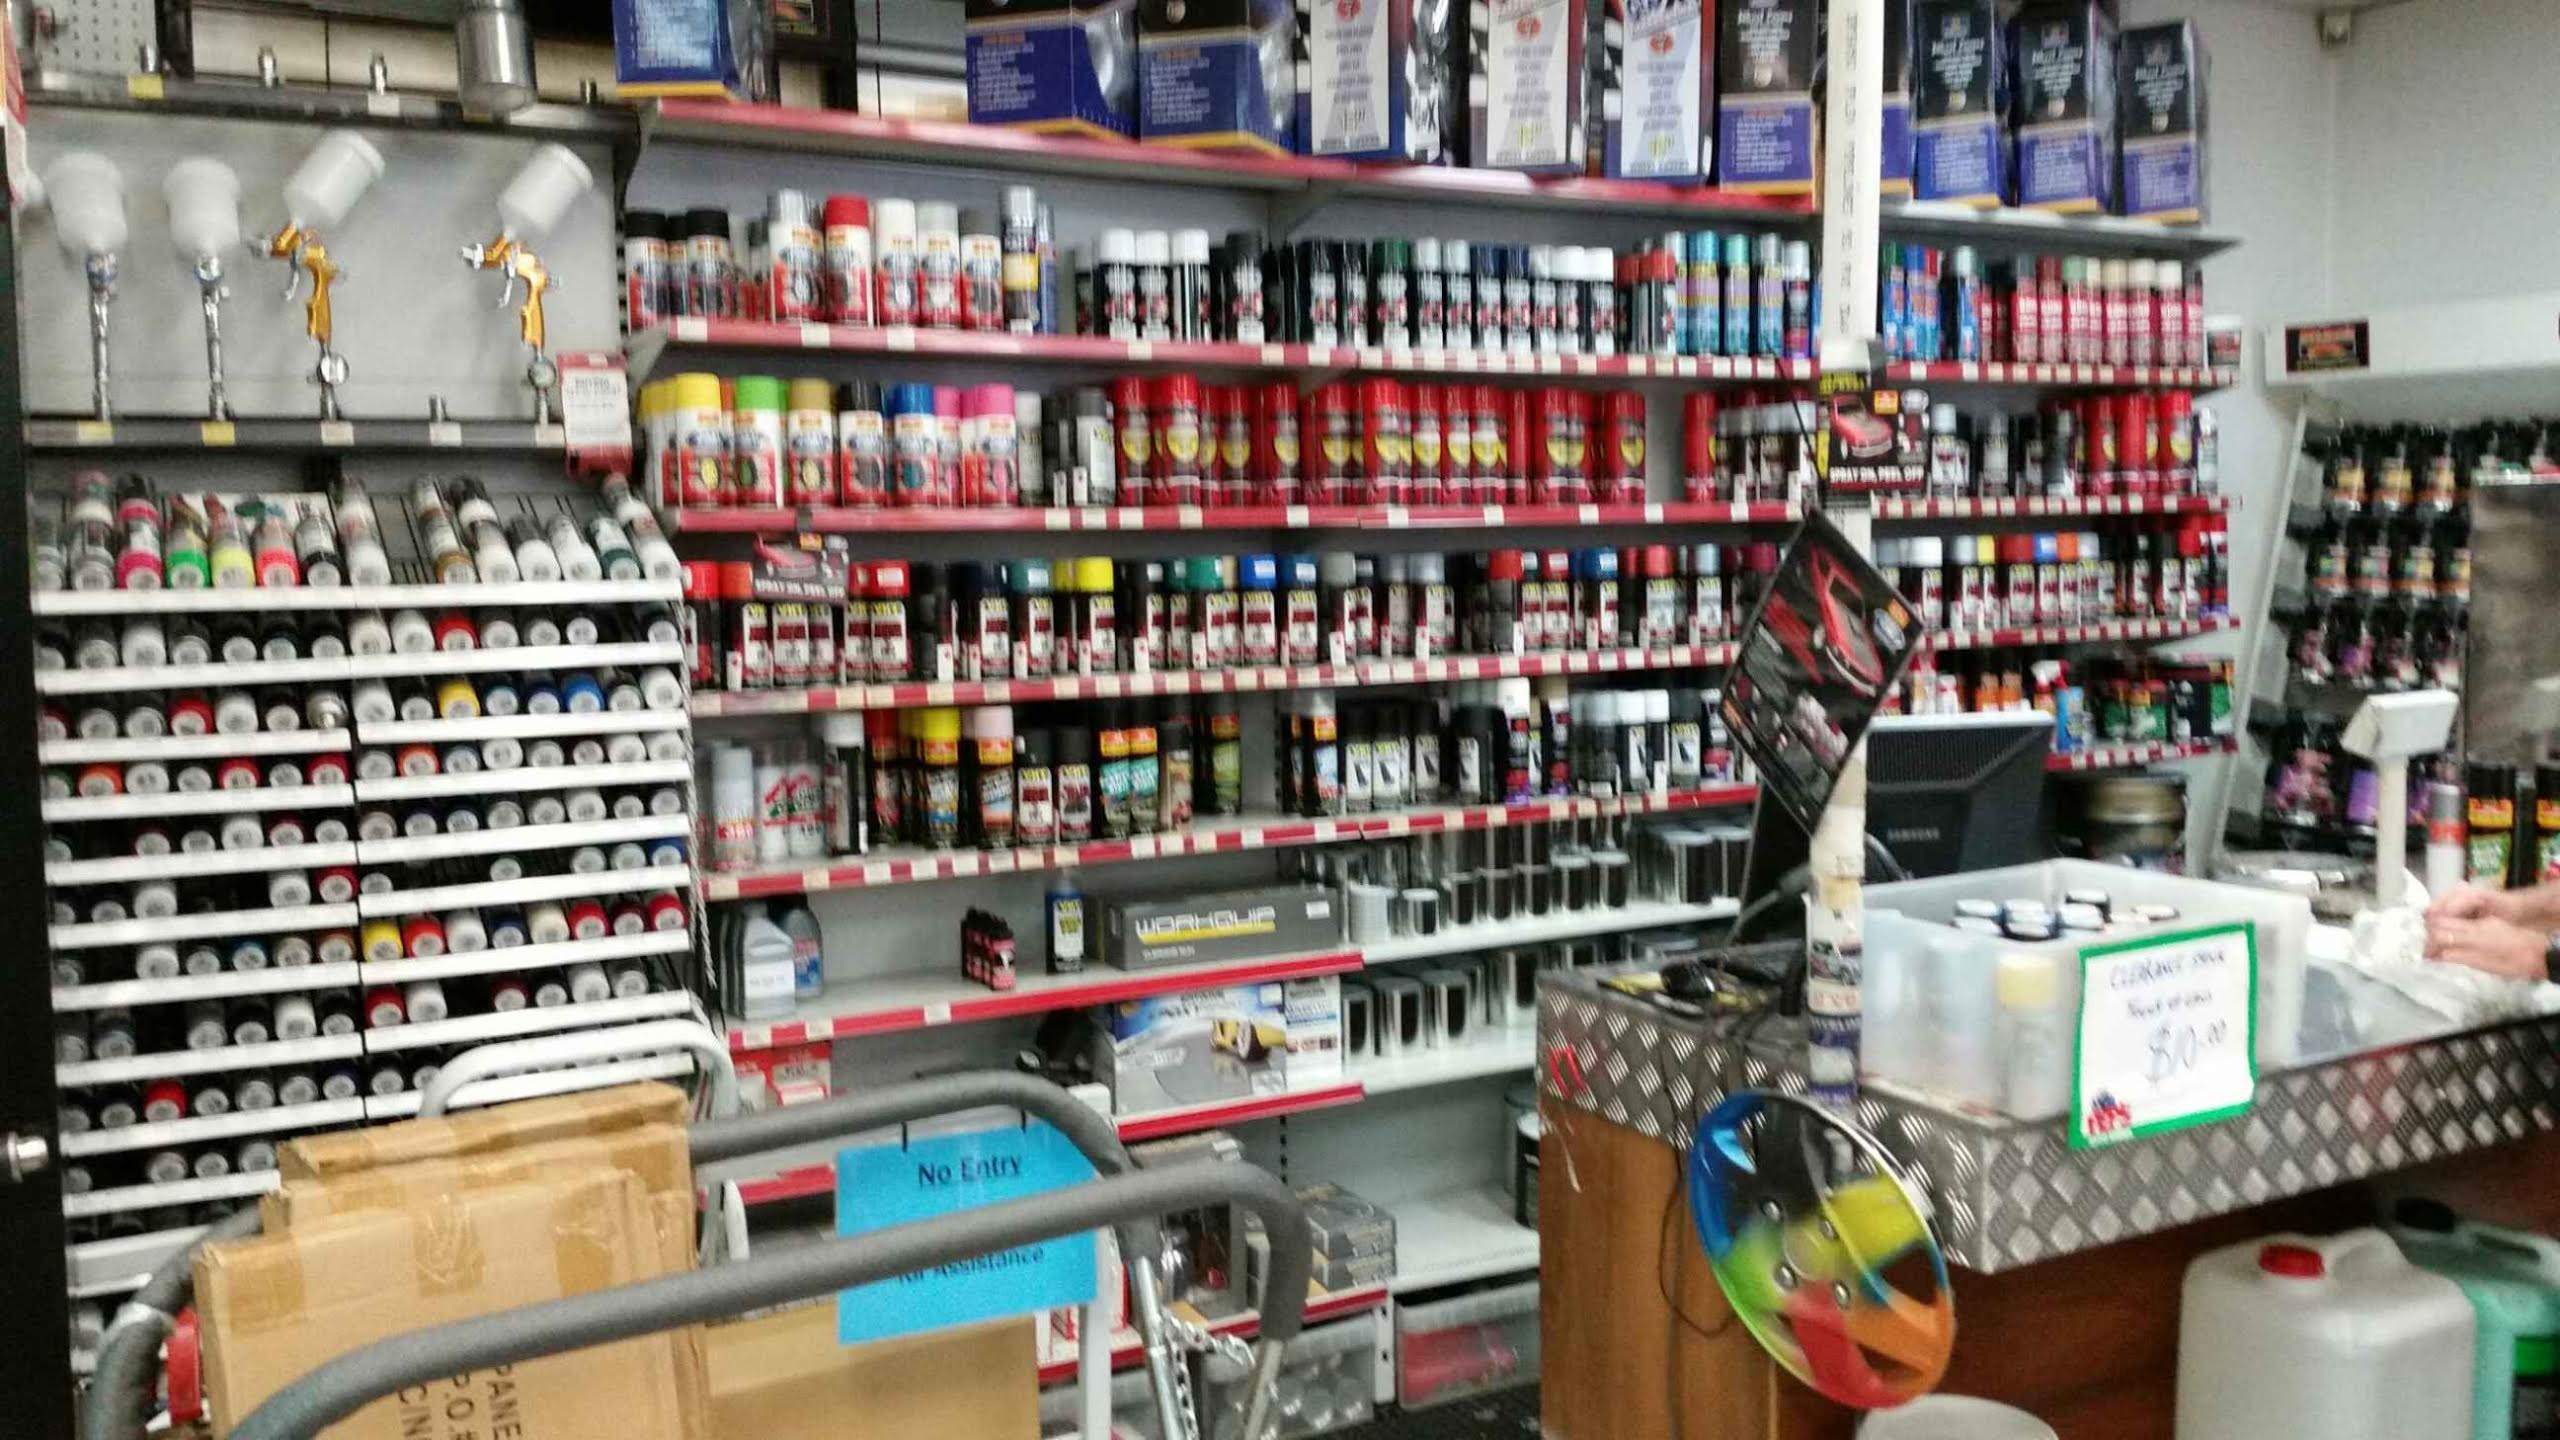 Auto Body Paint Supplies